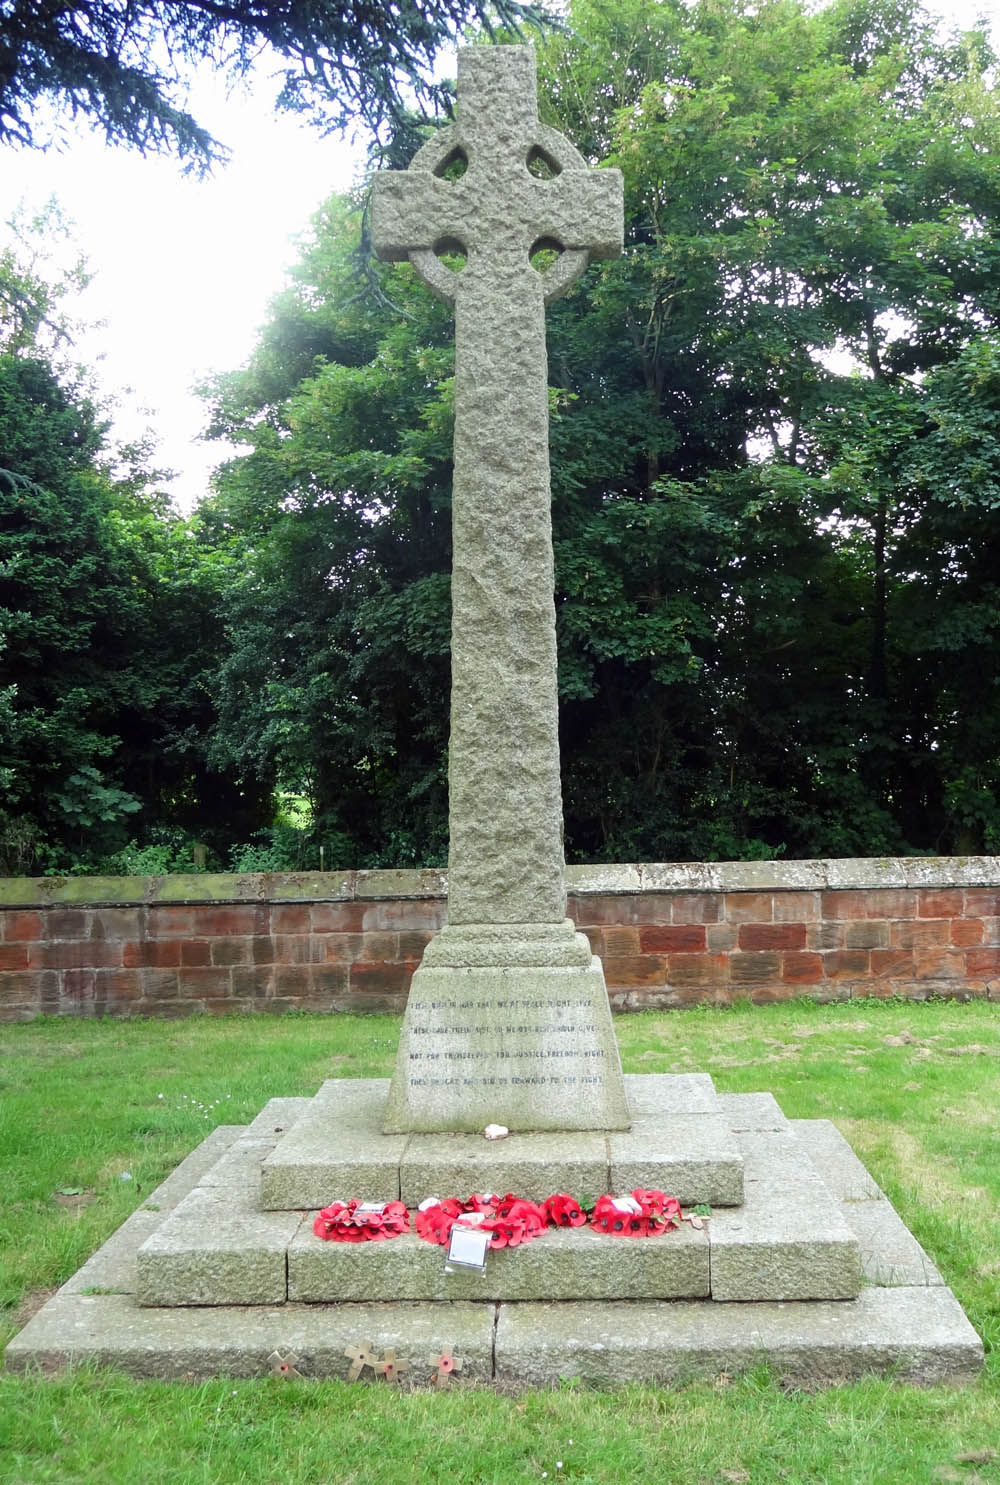 Memorial at St. Thomas's Kerresley